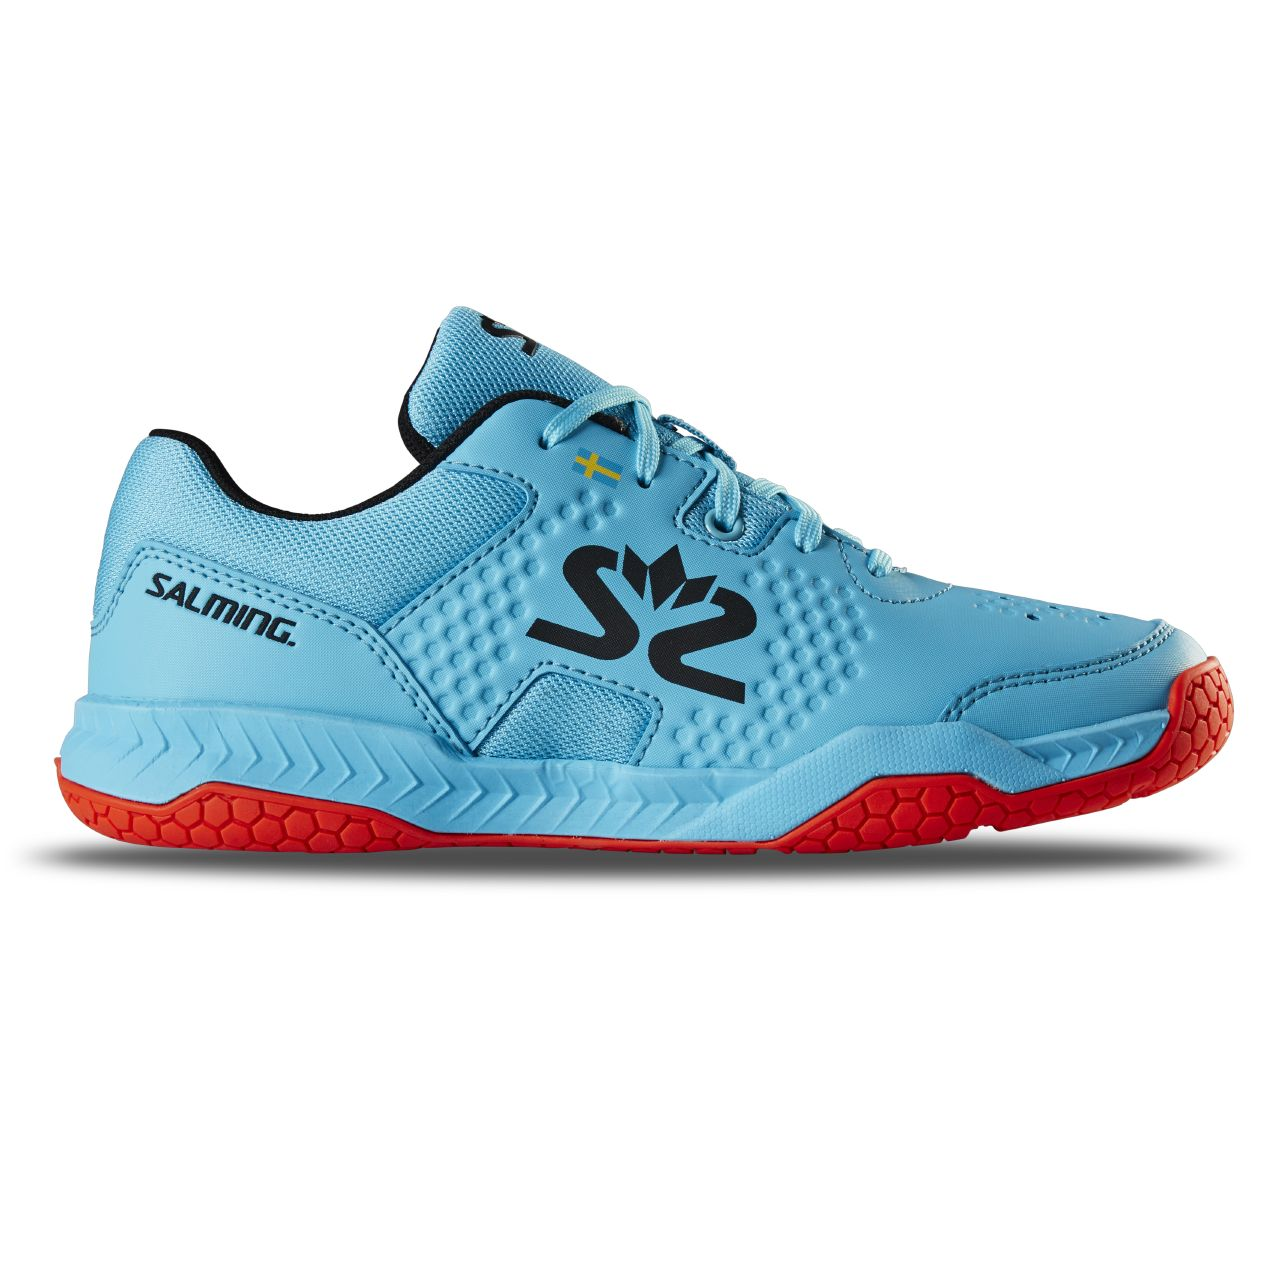 Salming Hawk Court Shoe Junior Blue/Red 5 UK - 38 EUR - 24,5 cm